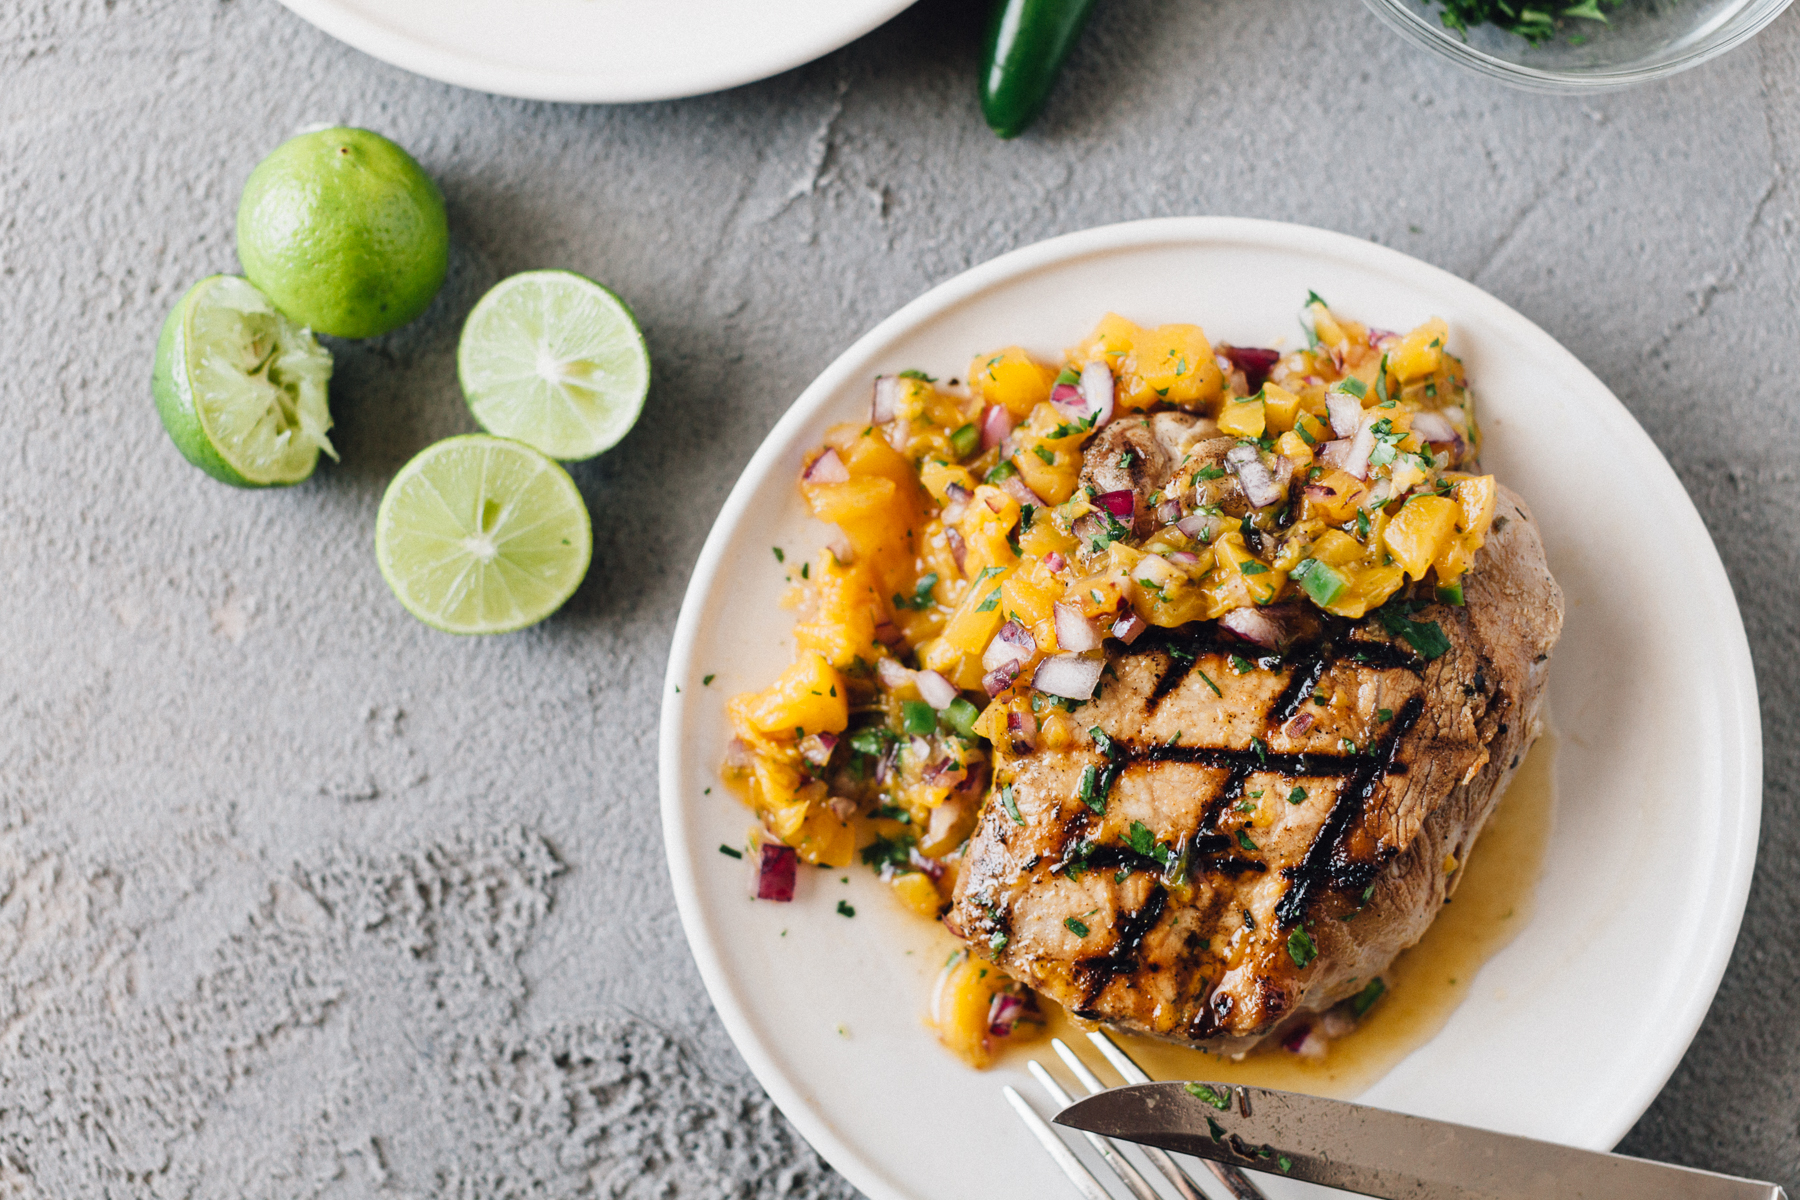 Cling Peach Salsa with Grilled Pork Chops | Alyssa & Carla